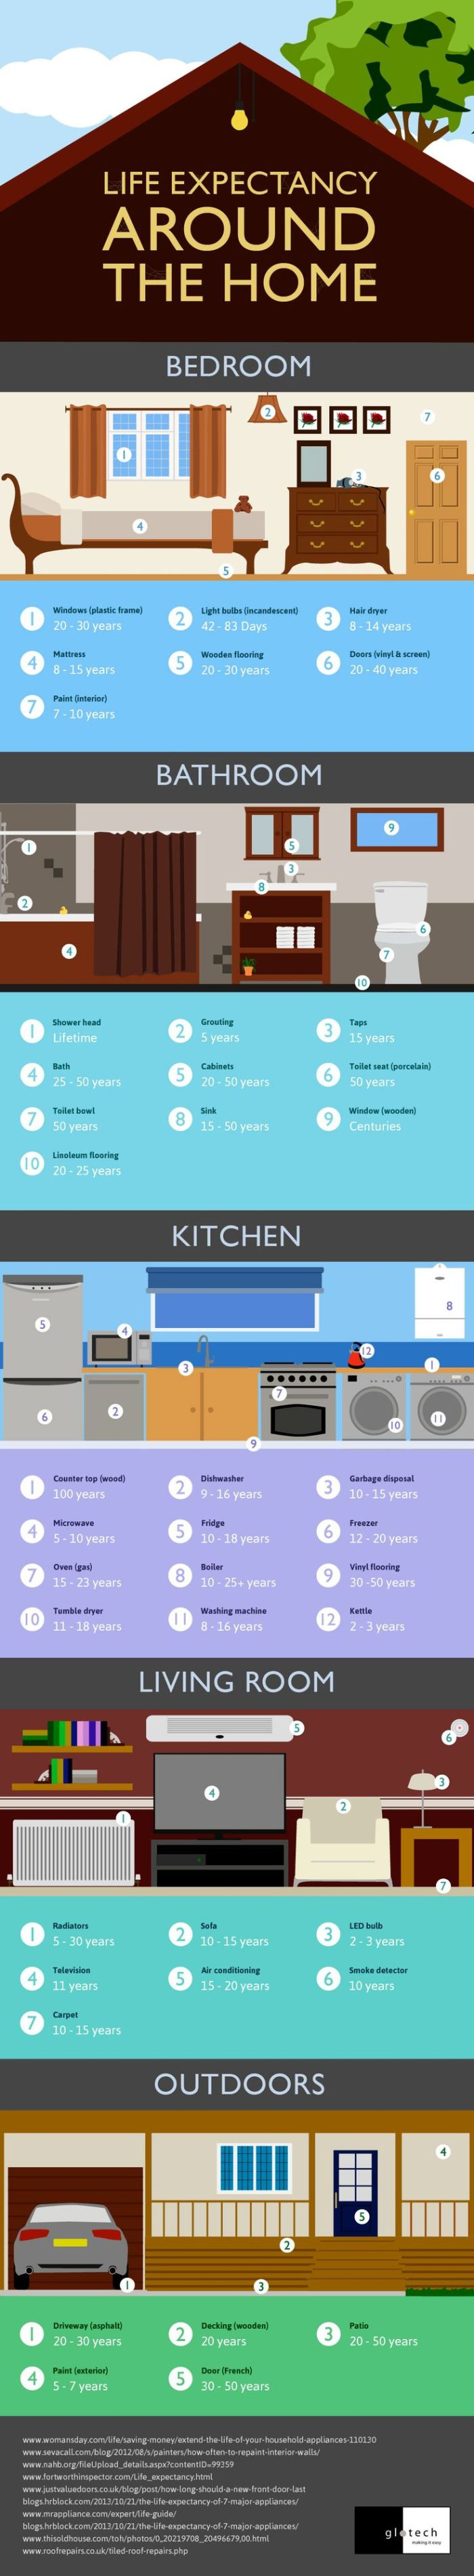 Infographic Credit:http://www.diyncrafts.com/11175/decor/50-amazingly-clever-cheat-sheets-to-simplify-home-decorating-projects/5